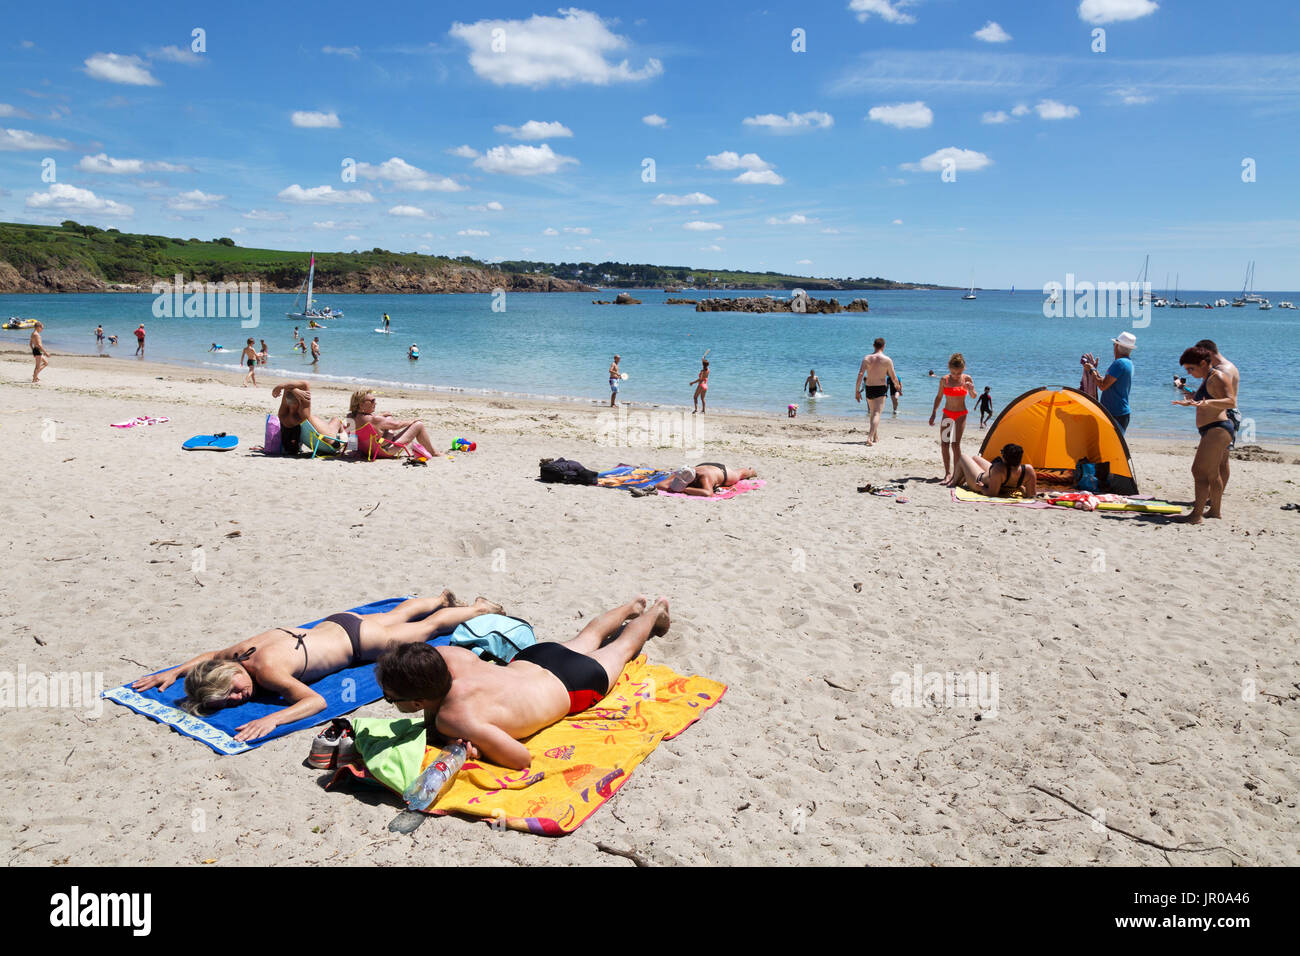 Sunbathers France Beach Stock Photos Amp Sunbathers France Beach Stock Images Alamy